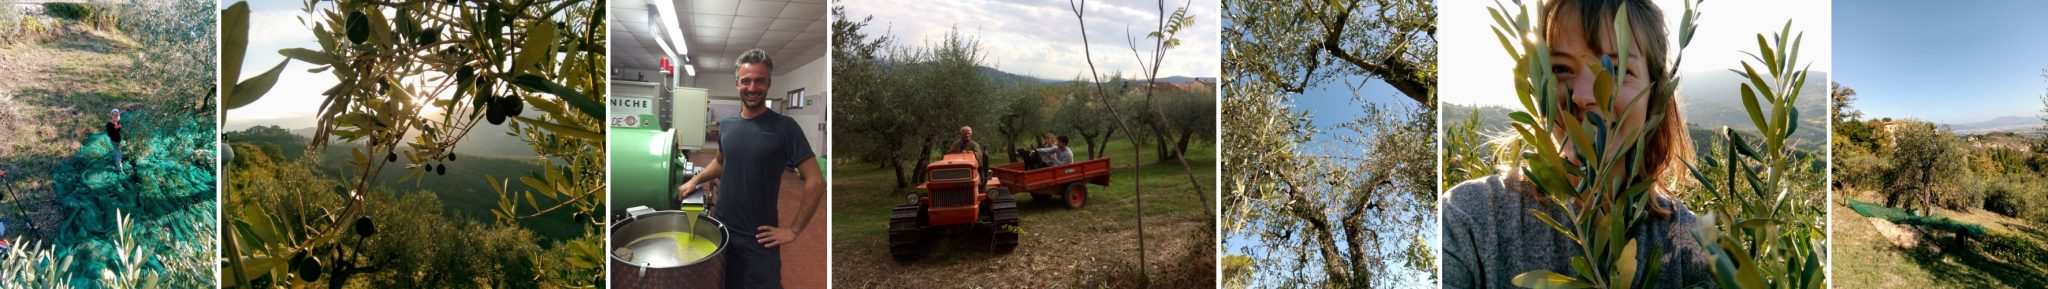 Olive harvest at our B&B La Rocca in Carmignano